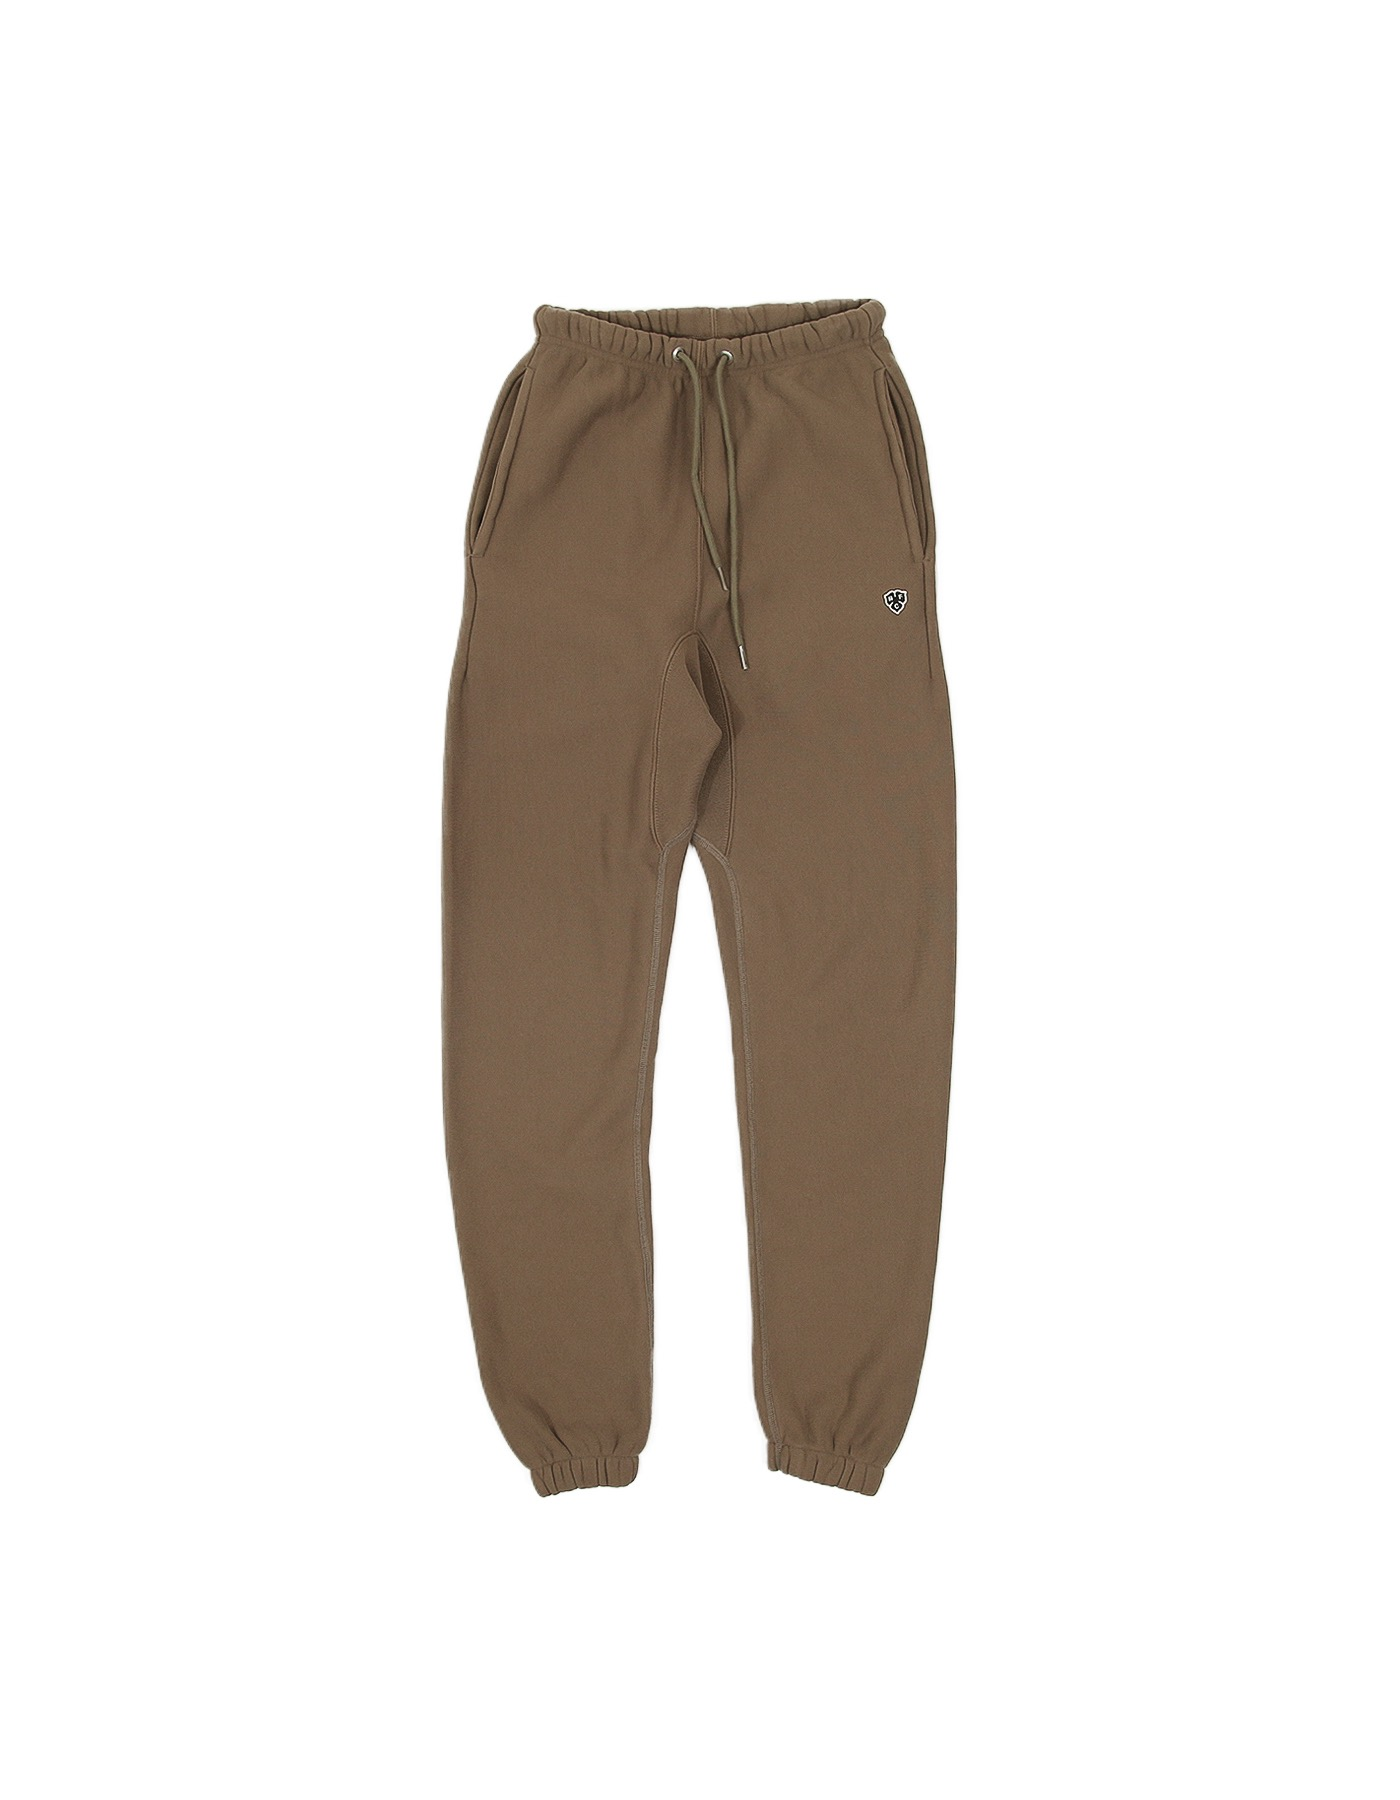 334 REVERSE FLEECE SWEATPANTS (SLIM-FIT) / DESERT KHAKI